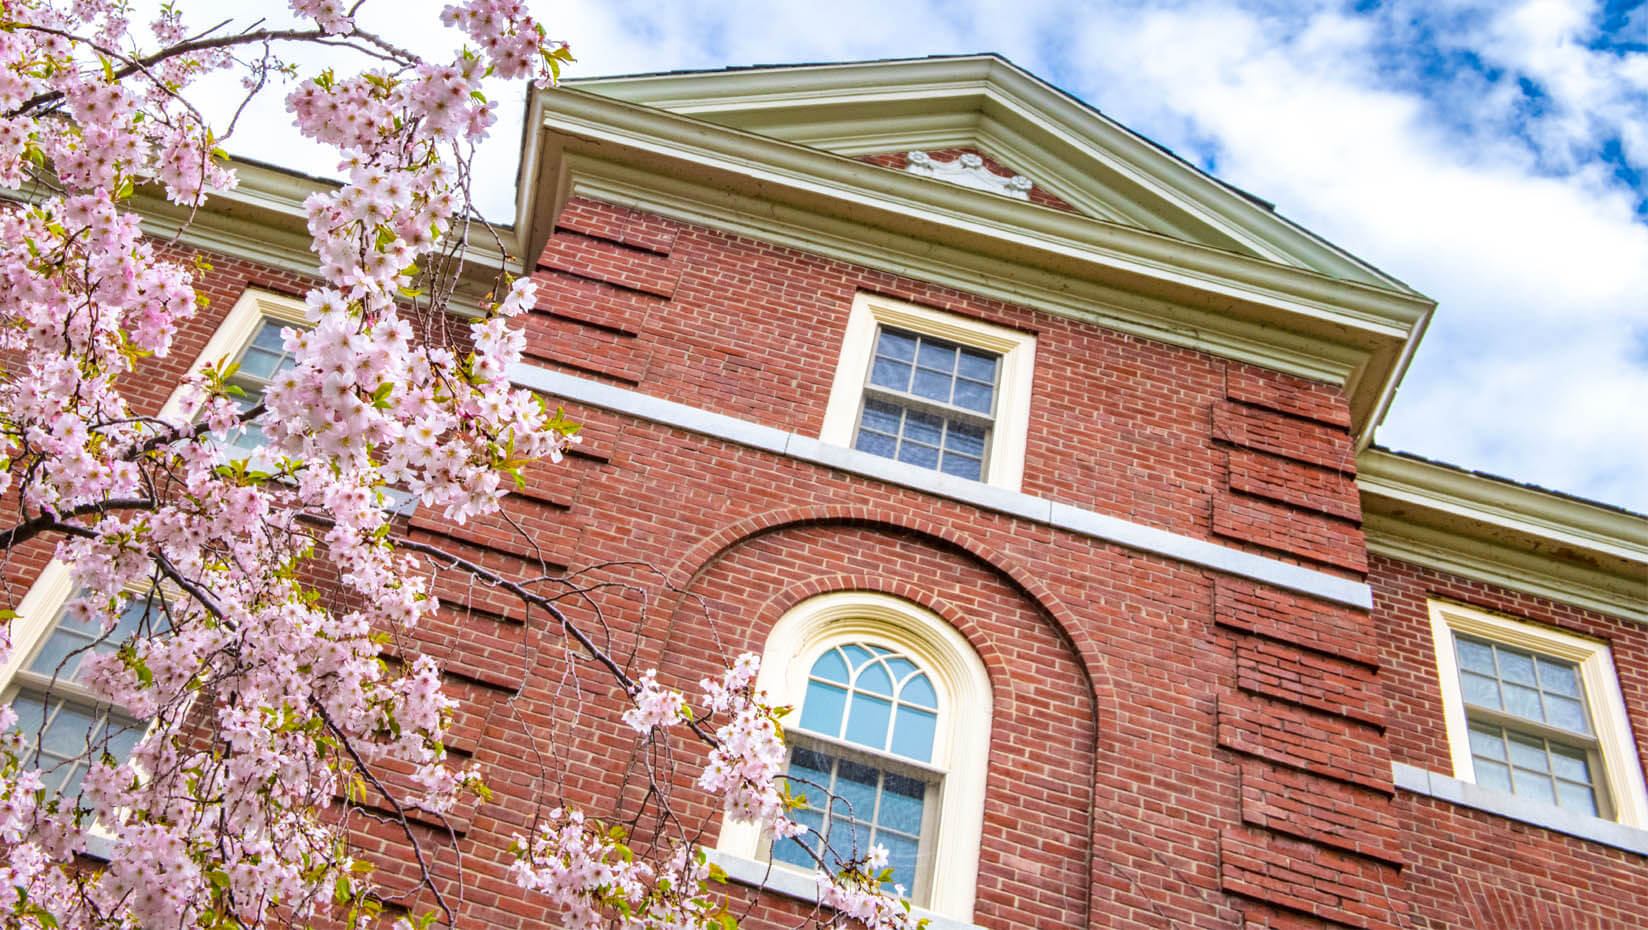 A flowering tree blooms outside a brick building